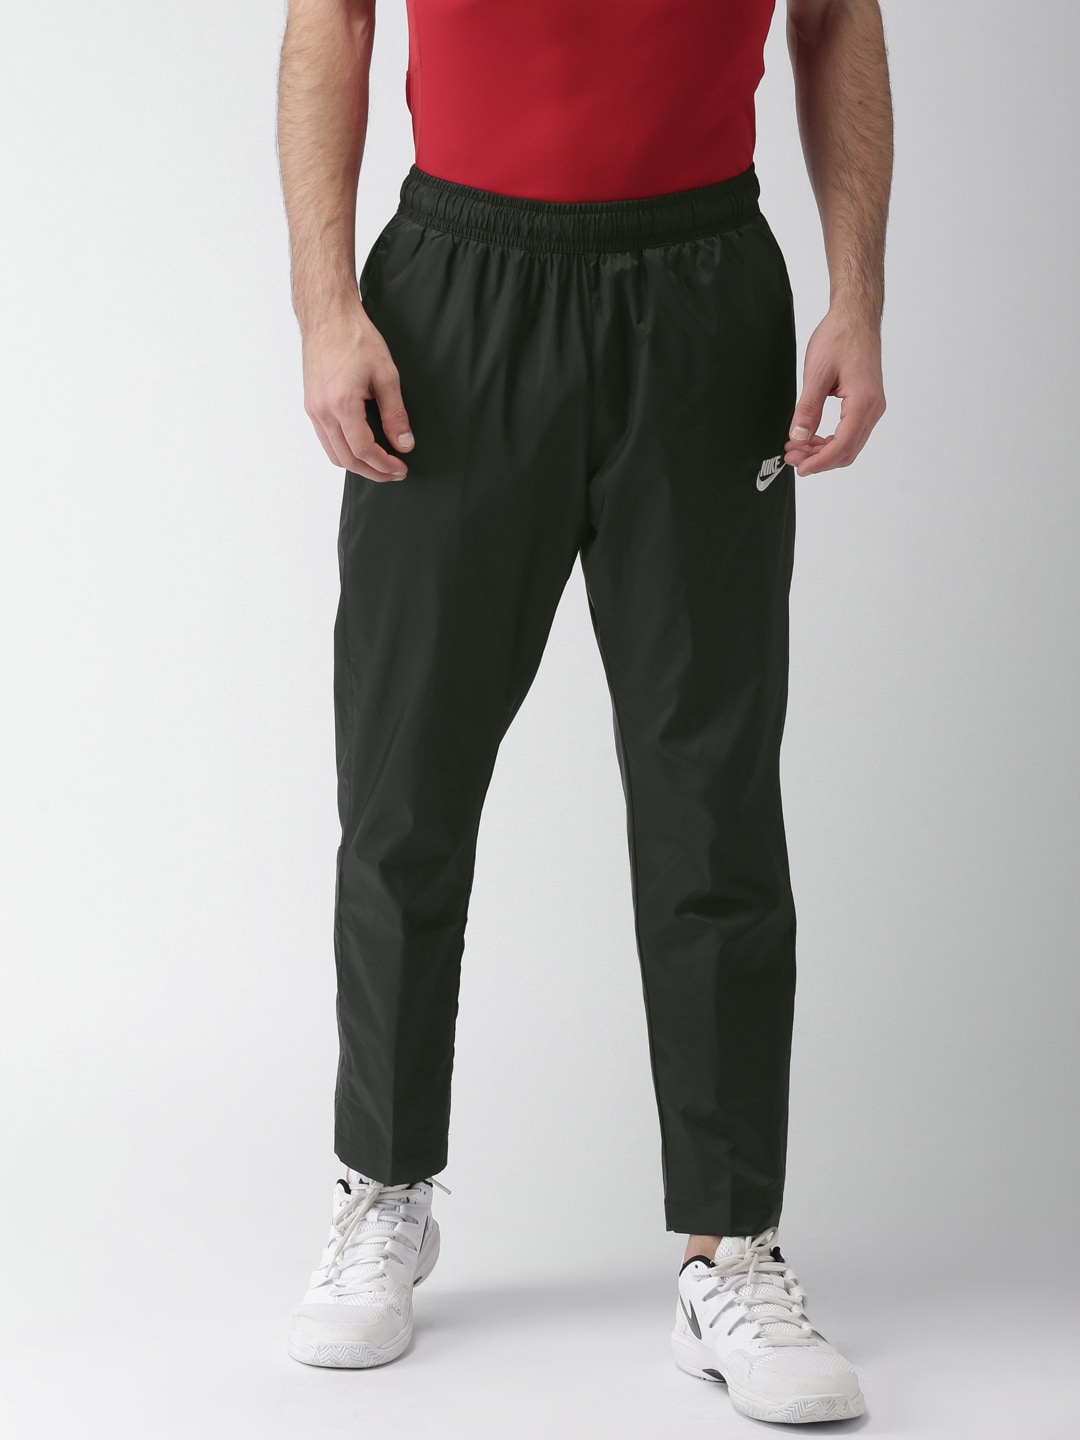 dff1d245 Apparel Nike Men Track Pants Pants - Buy Apparel Nike Men Track Pants Pants  online in India